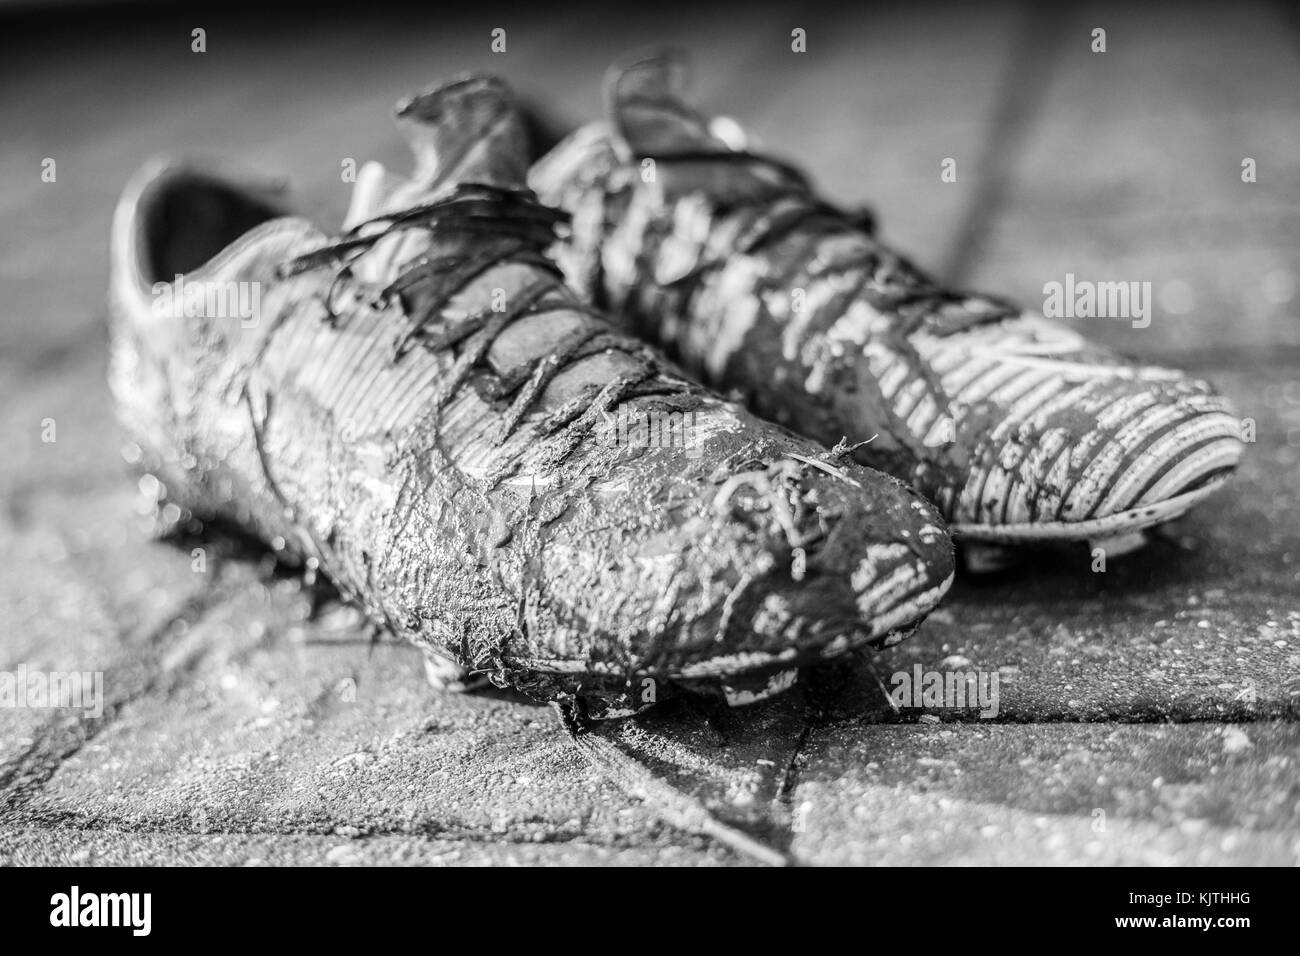 Black & white image of a pair of junior football boots heavily covered in mud - Stock Image